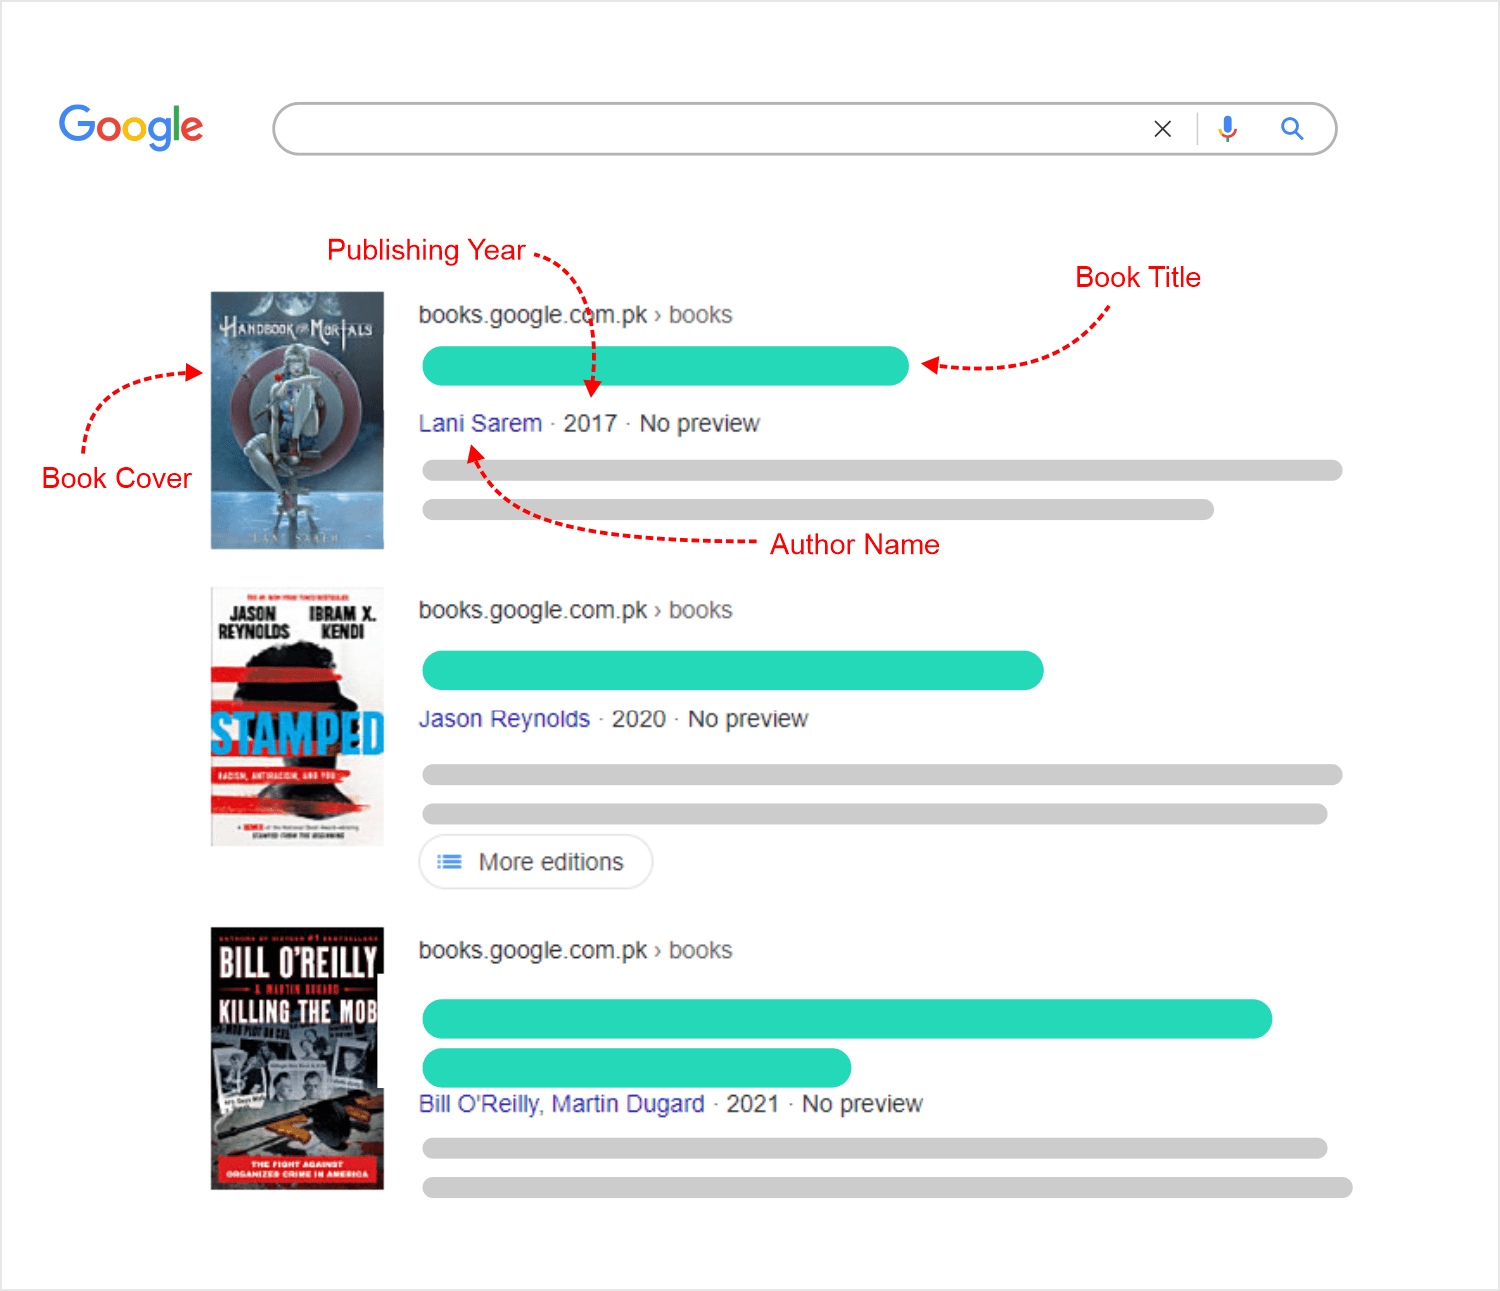 Books Google Search with arrows